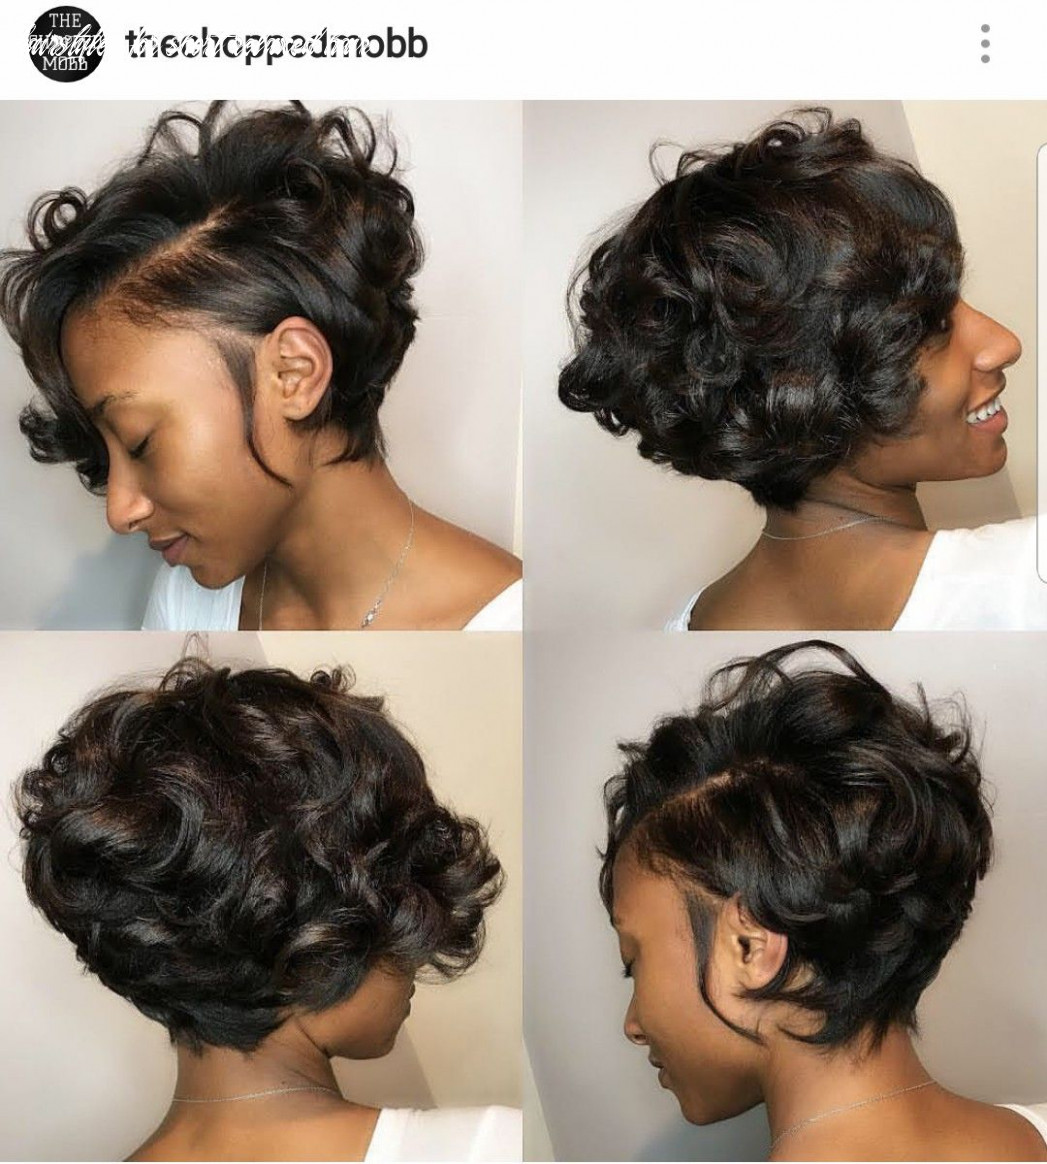 Pin on short relaxed hair cuts hairstyles for short relaxed hair